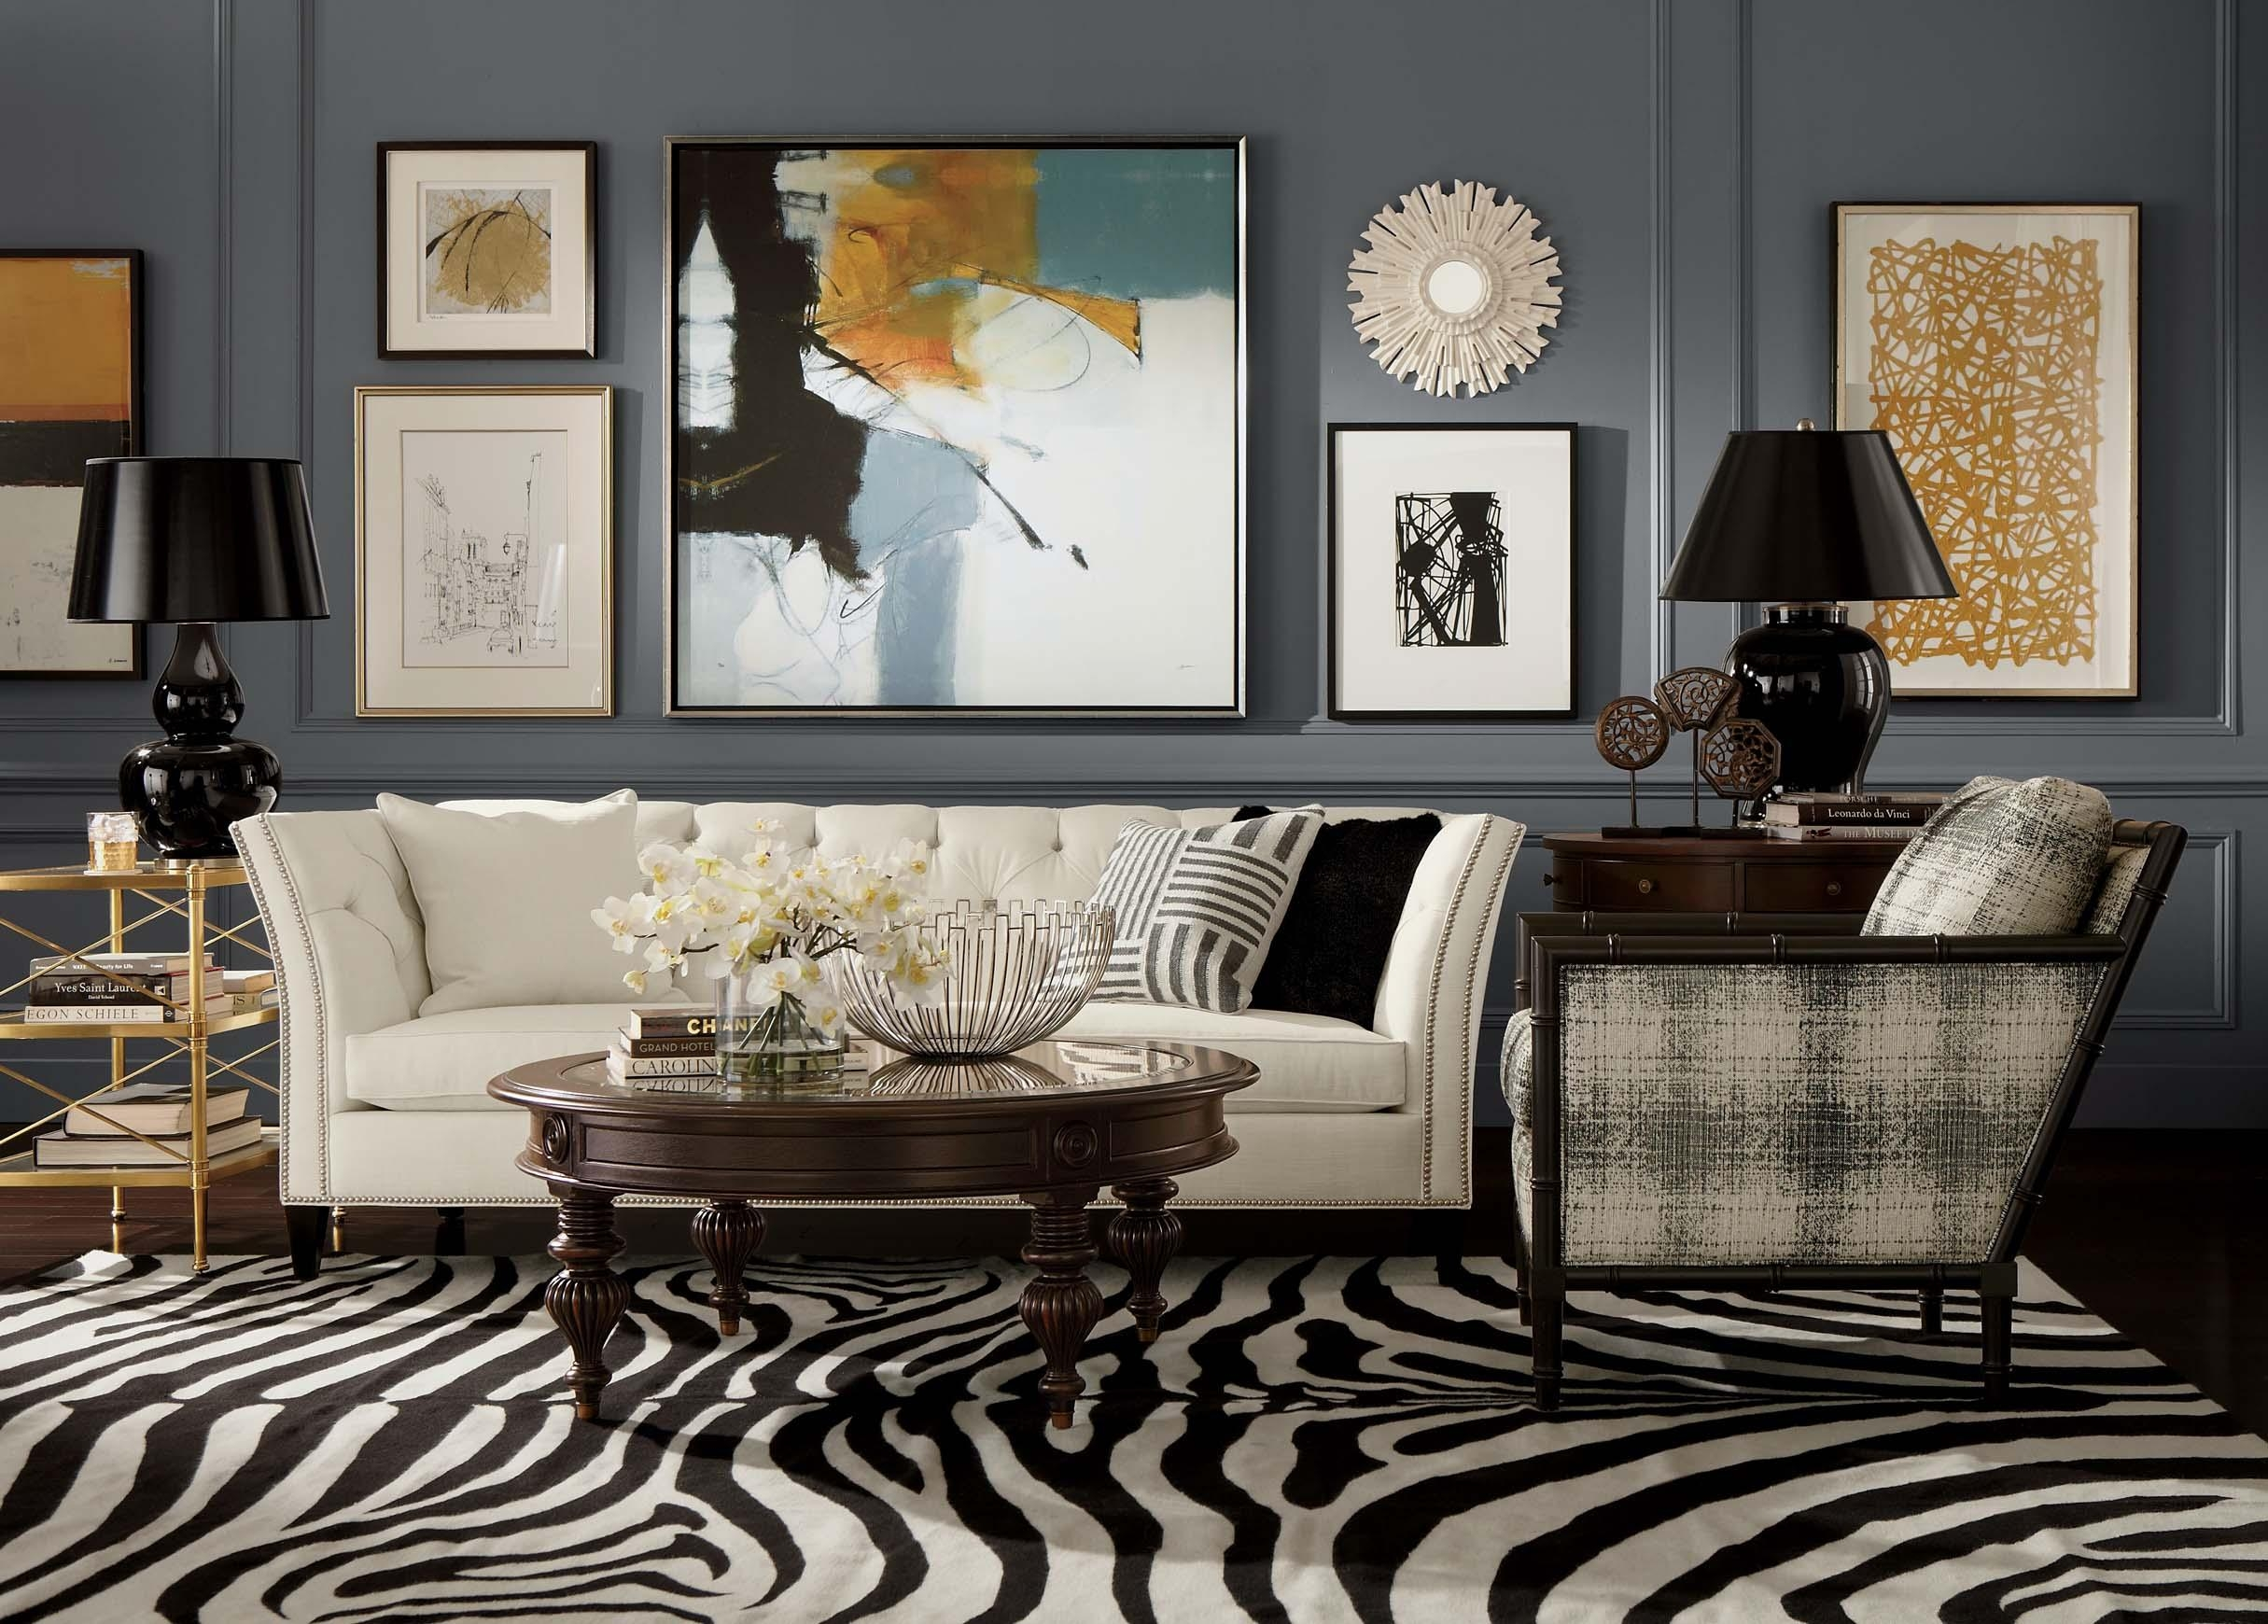 Gallery Living Room | Ethan Allen With Regard To Ethan Allen Wall Art (Image 5 of 20)